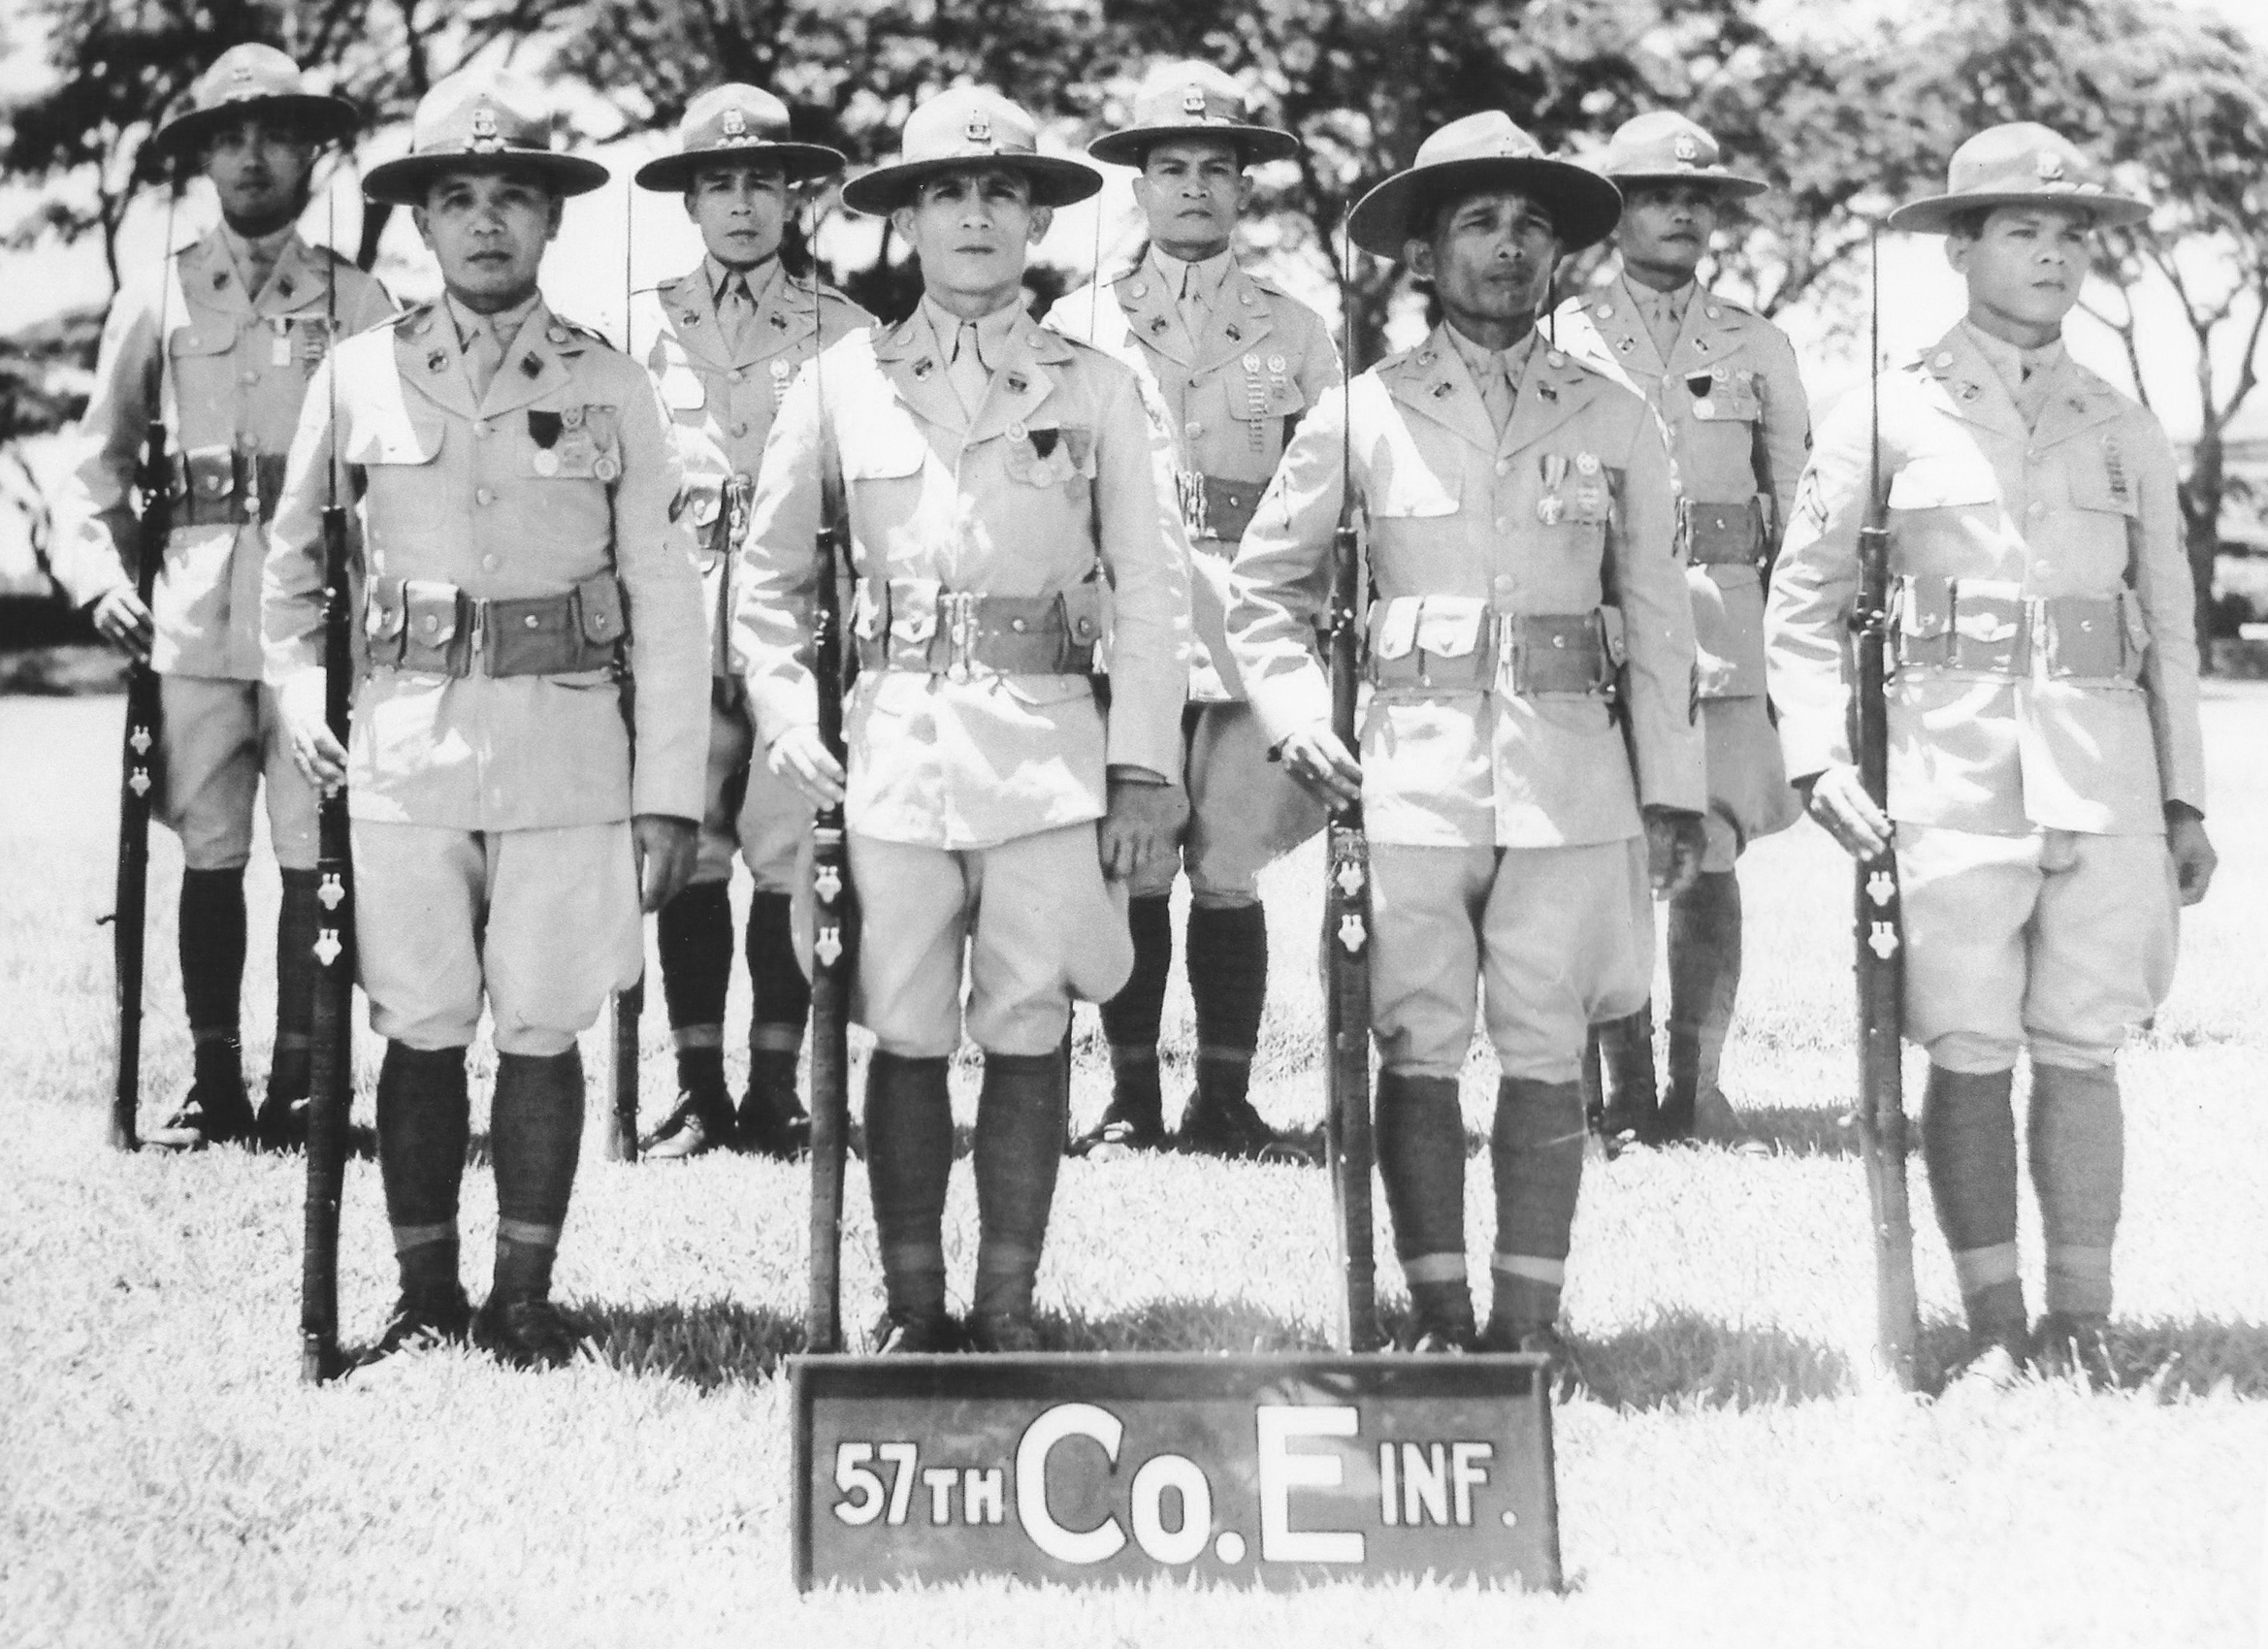 Members of Company E 57th Infantry Regiment.